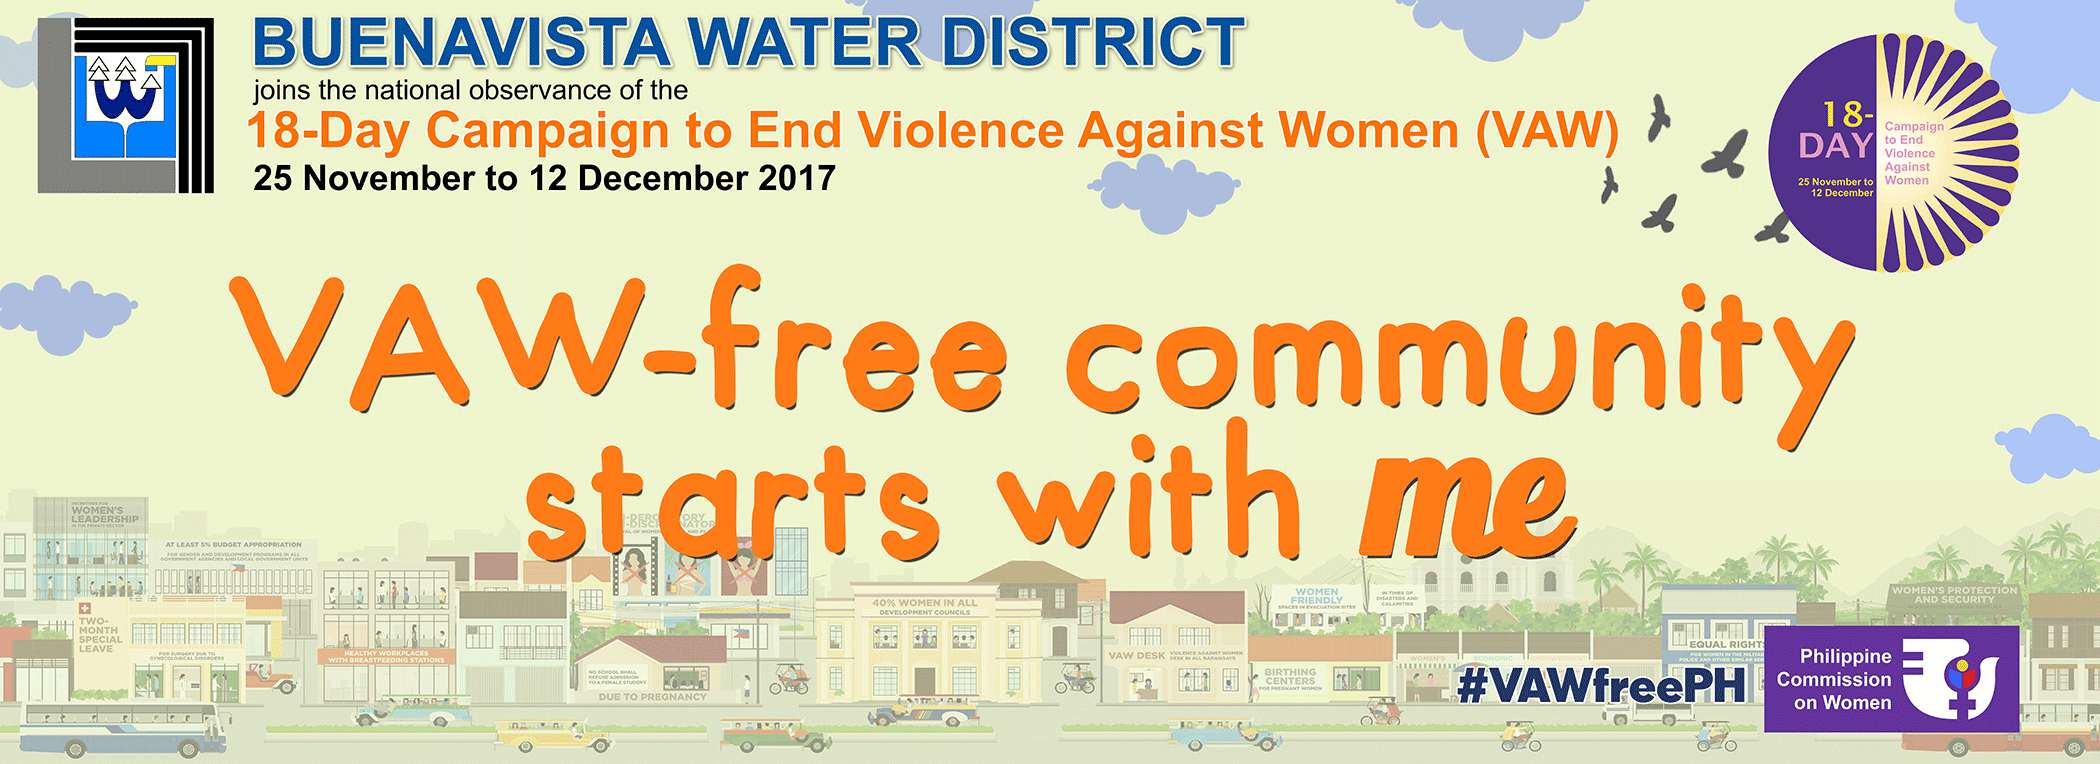 Buenavista Water District joins the 18-day Campaign to End Violence Against Women (VAW)